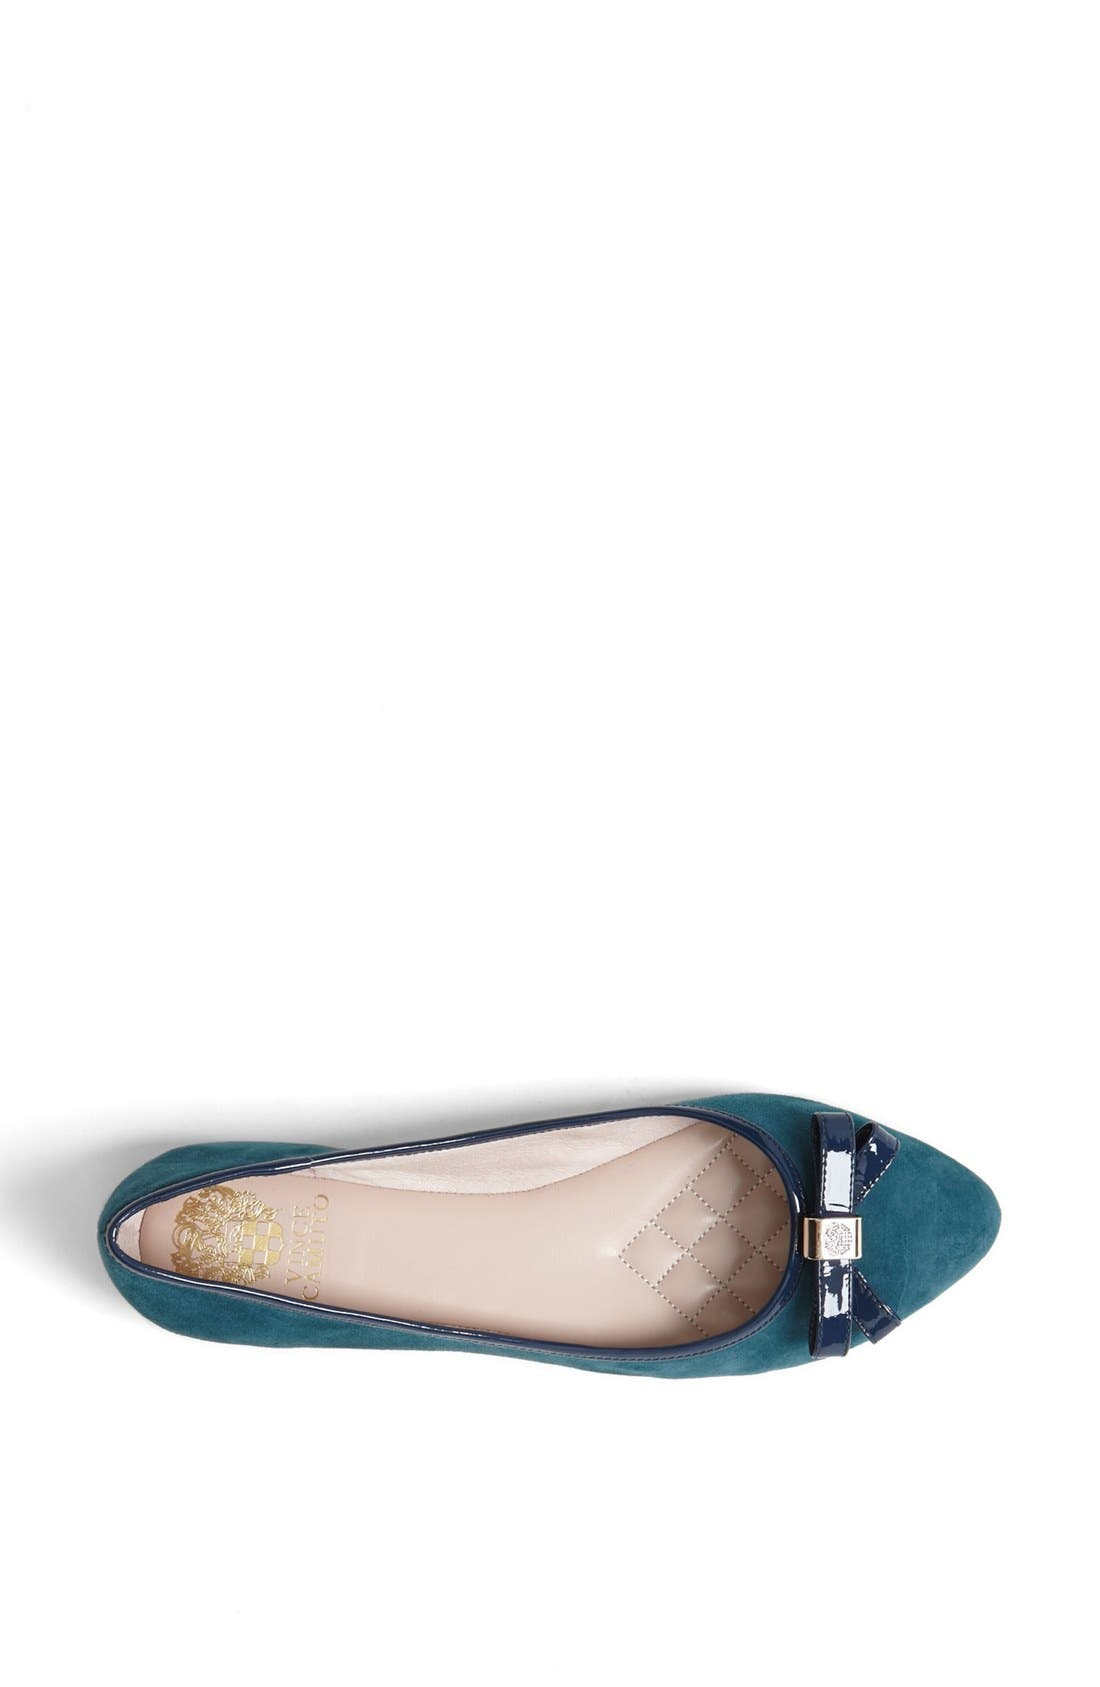 Alternate Image 3  - Vince Camuto 'Timba' Flat